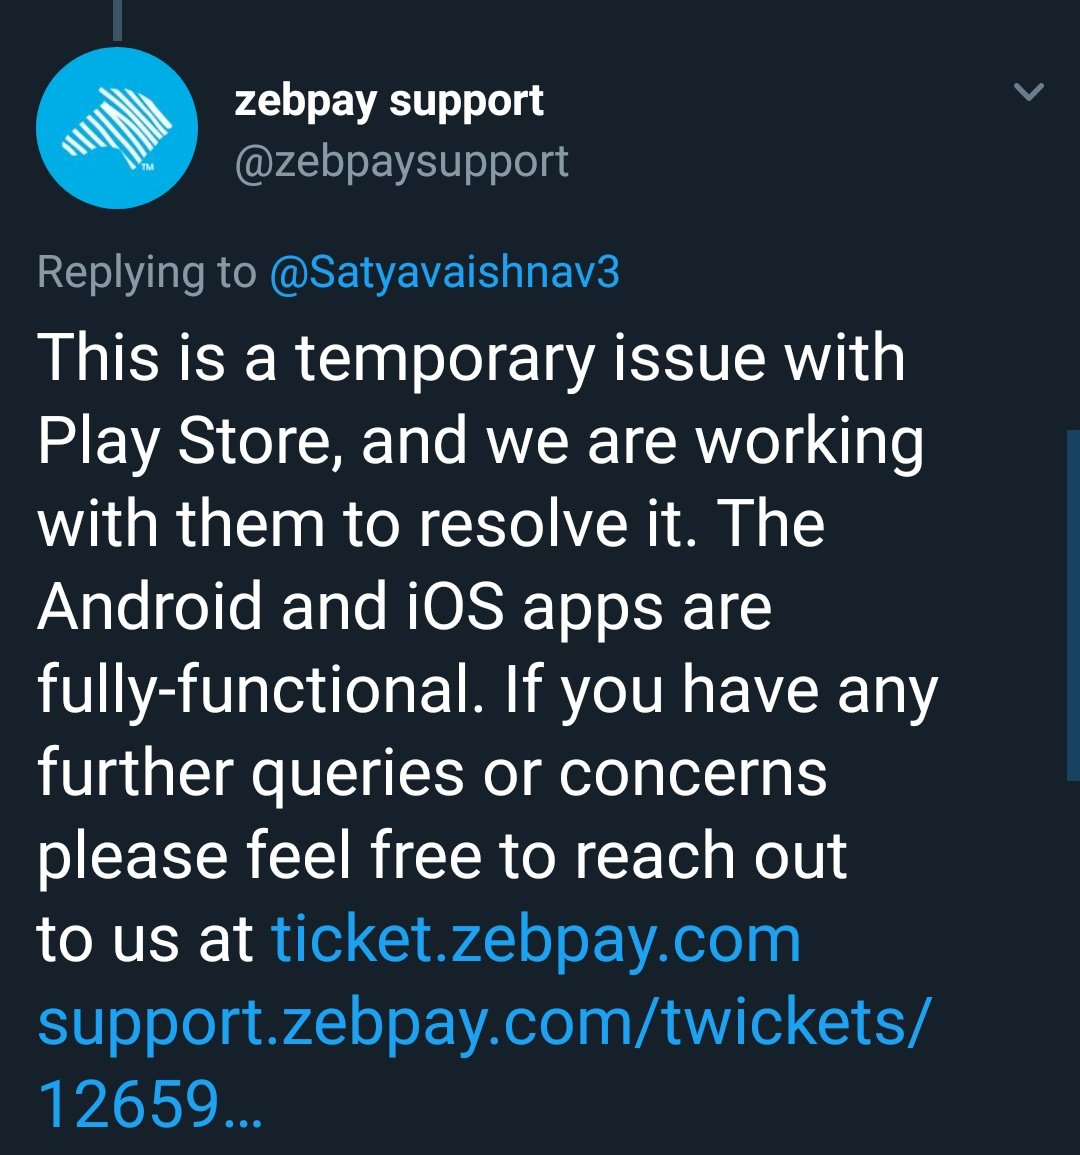 zebpay hashtag on Twitter